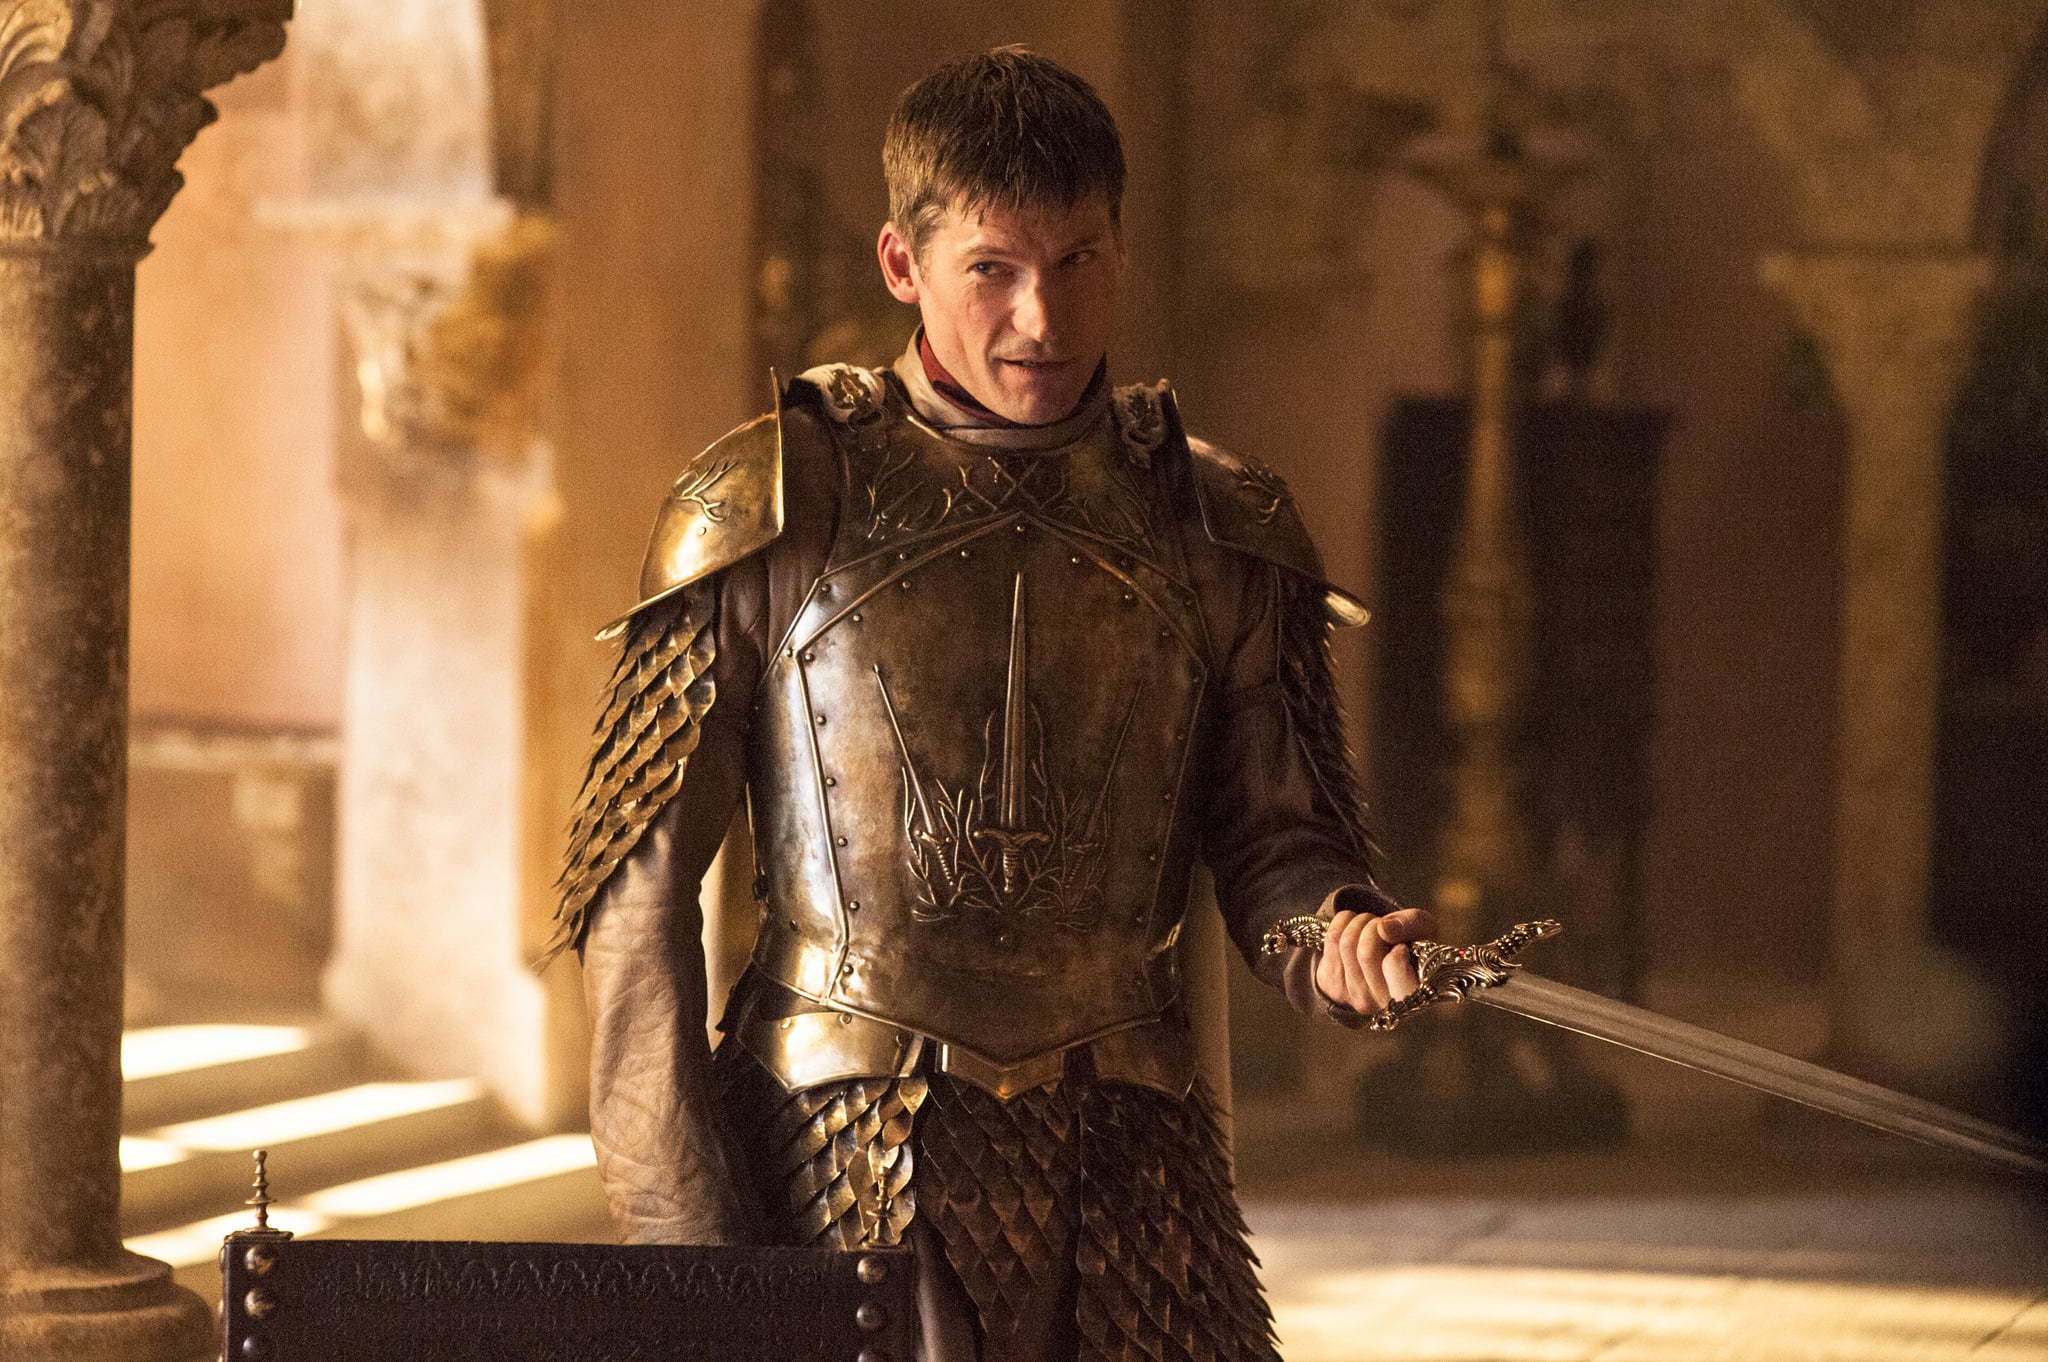 A sword fits nicely in Jaime's left hand.